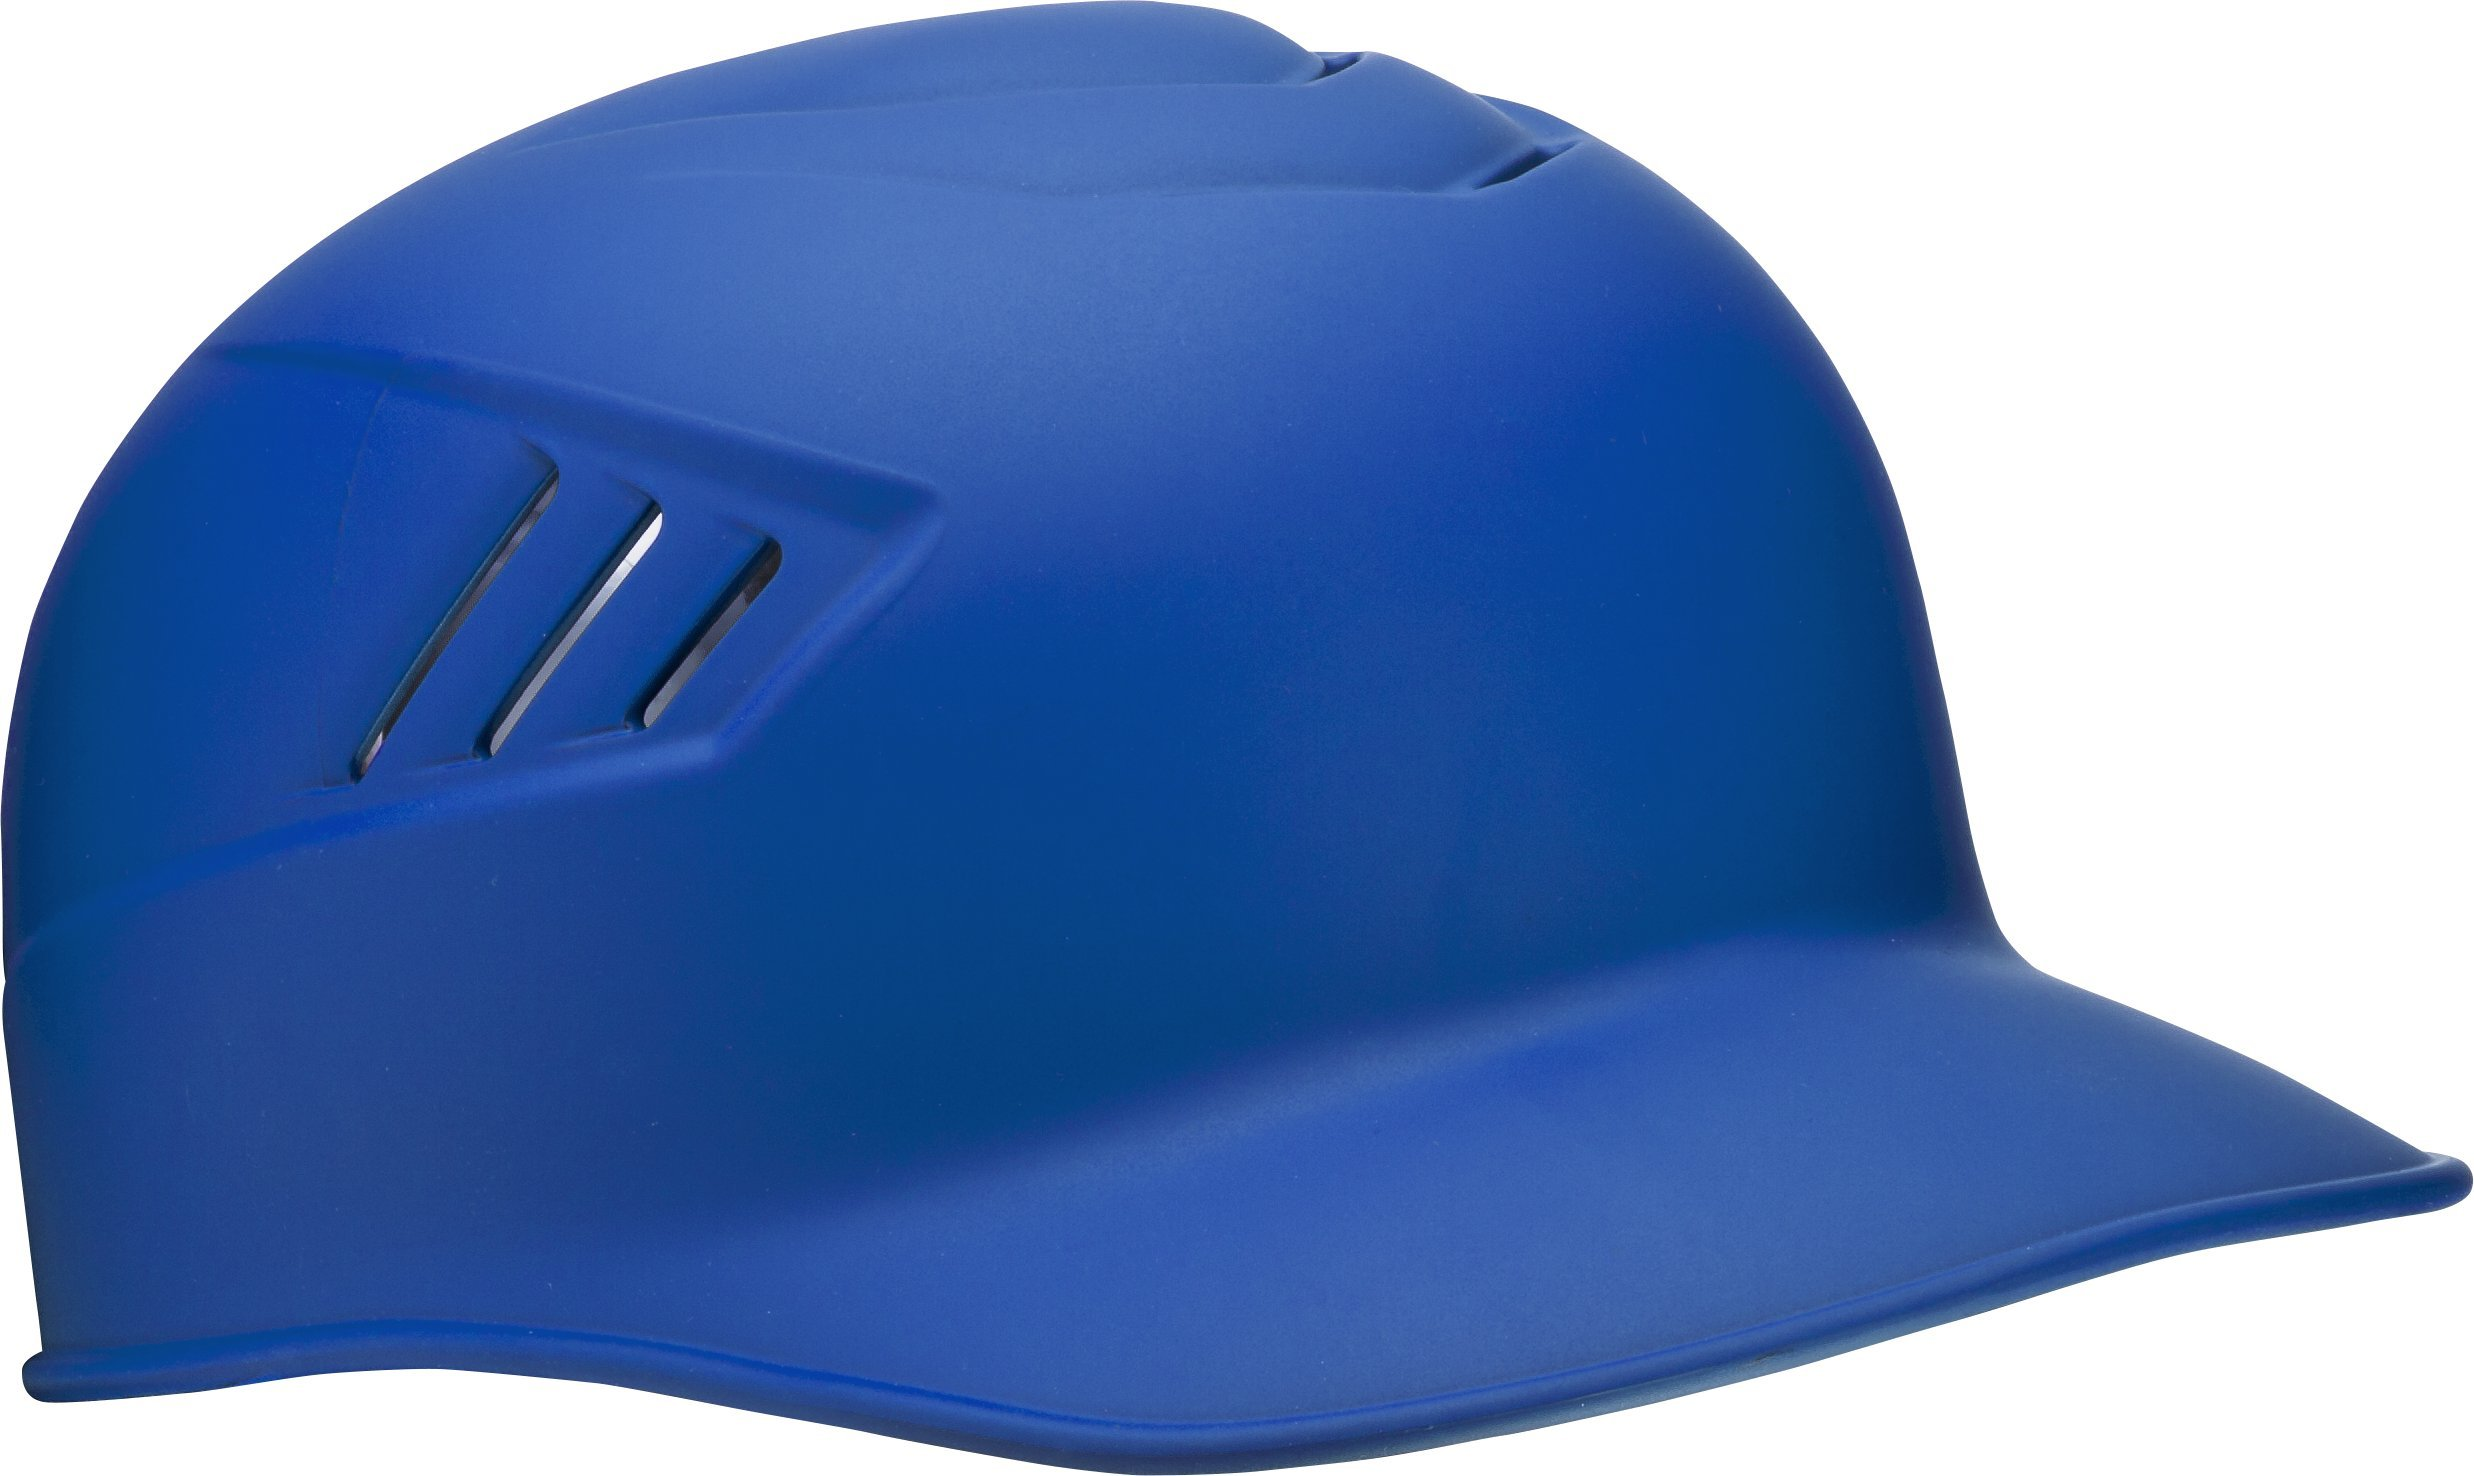 Rawlings Coolflo Matte Style Alpha Sized Base Coach Helmet, Royal, Small by RAWLINGS